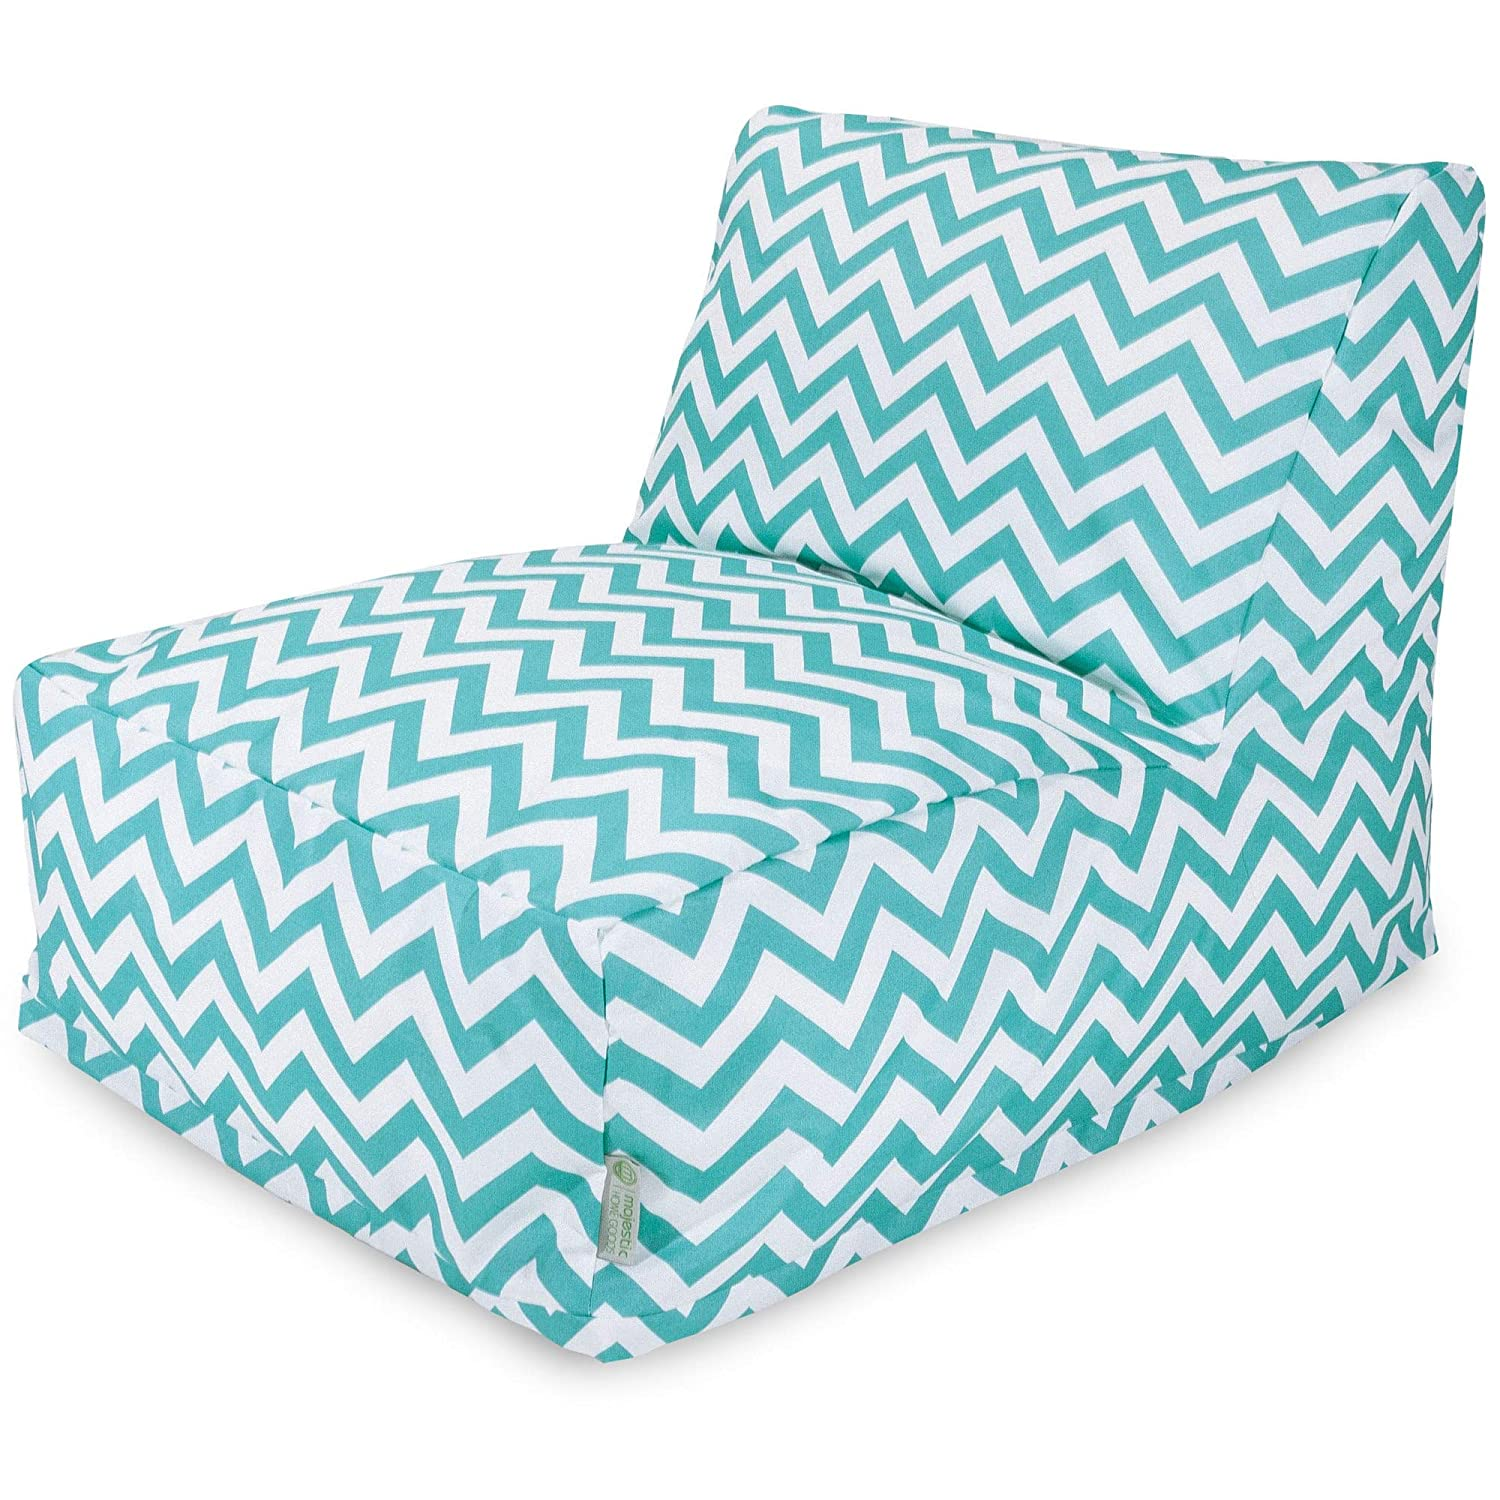 Sensational Majestic Home Goods Chevron Bean Bag Chair Lounger Teal Machost Co Dining Chair Design Ideas Machostcouk